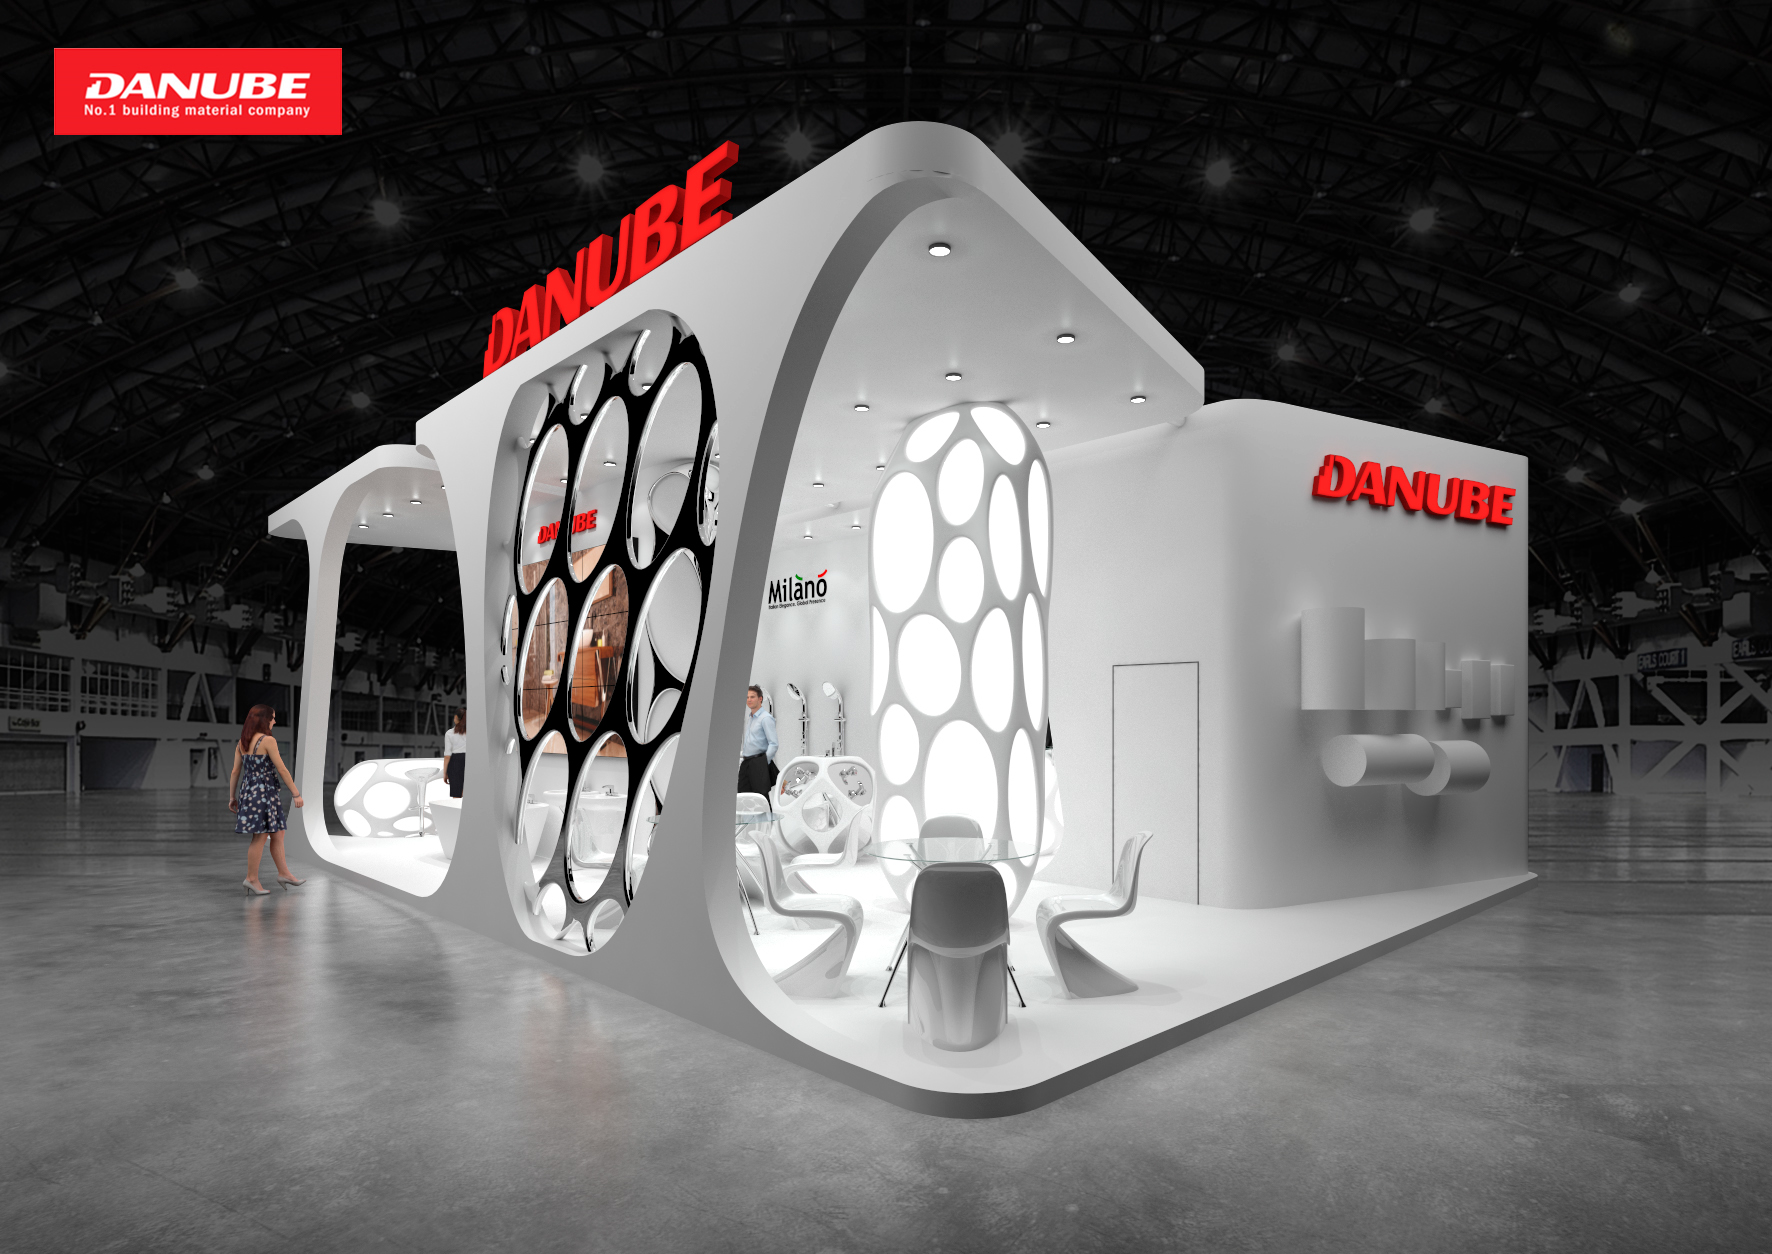 Danube, exhibition stand on Behance